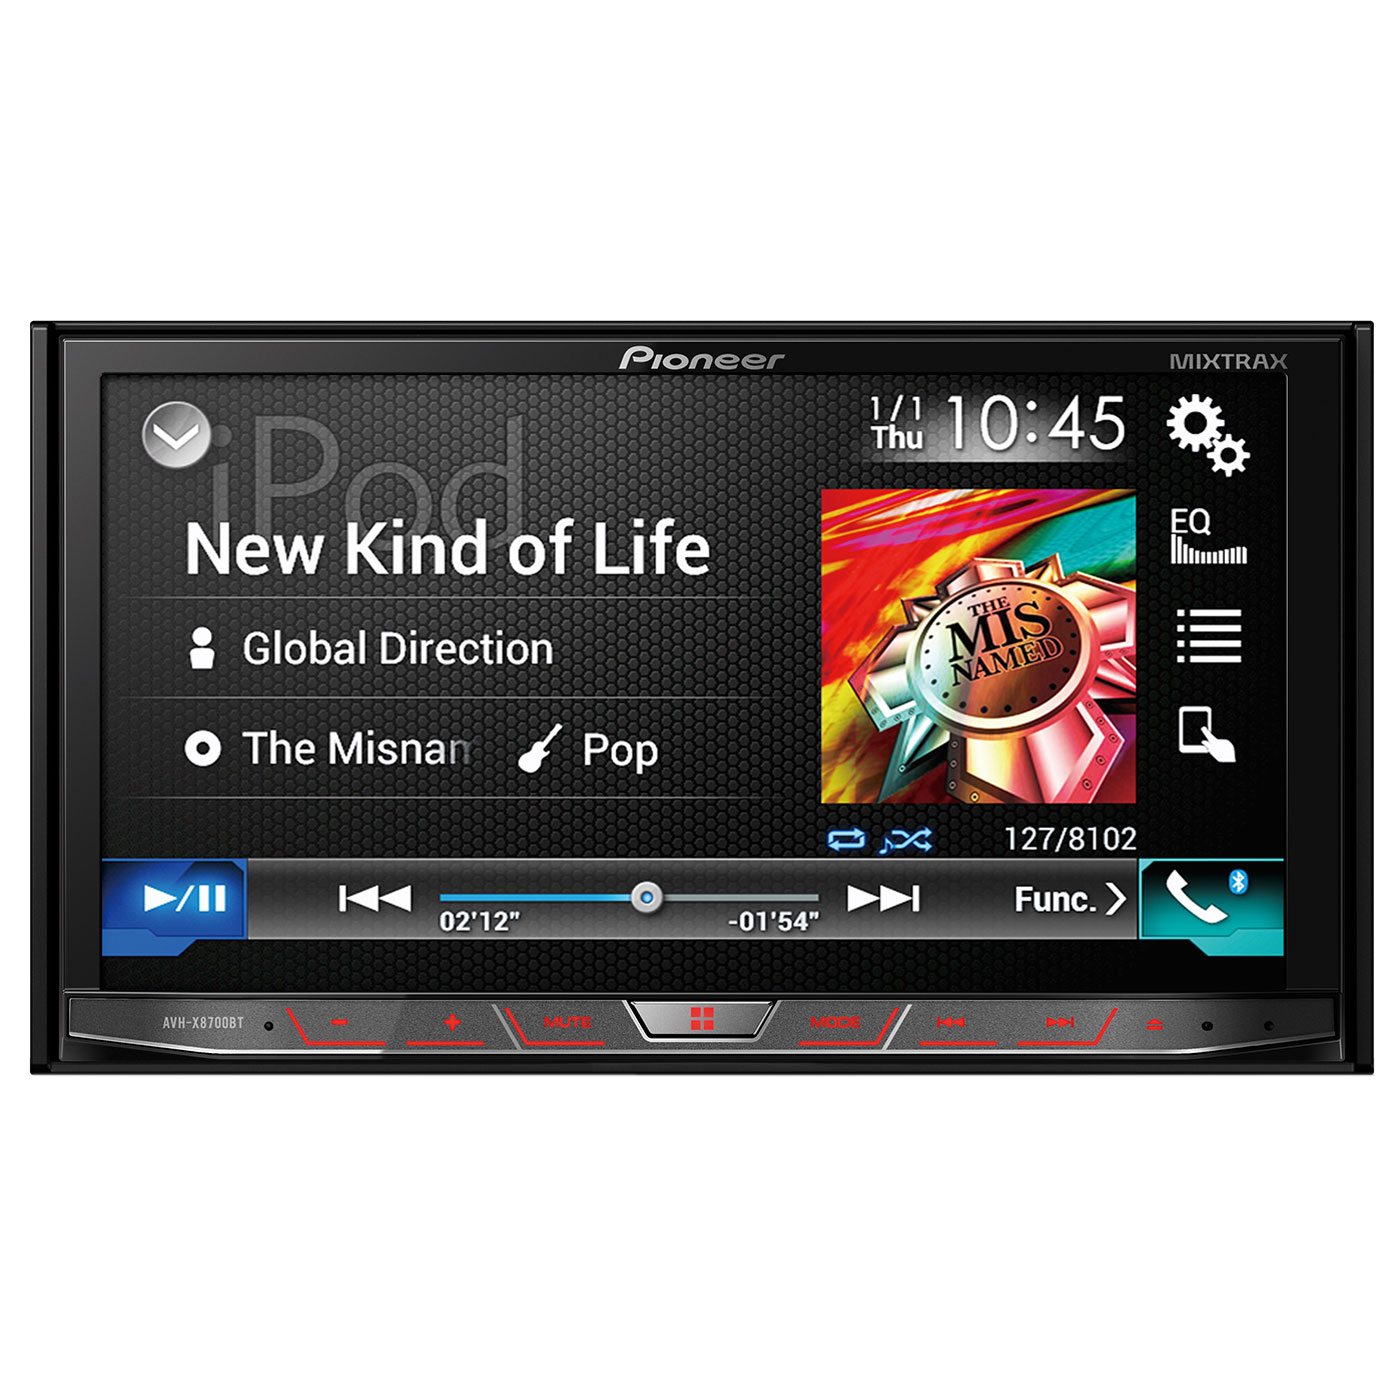 "Autoradio Pioneer AVH-X8700BT Autoradio CD/DVD/DivX MP3 avec écran tactile 7"", contrôle iPod/iPhone, Apple CarPlay, USB, HDMI, Bluetooth, Android Auto, AppRadio et MirrorLink"